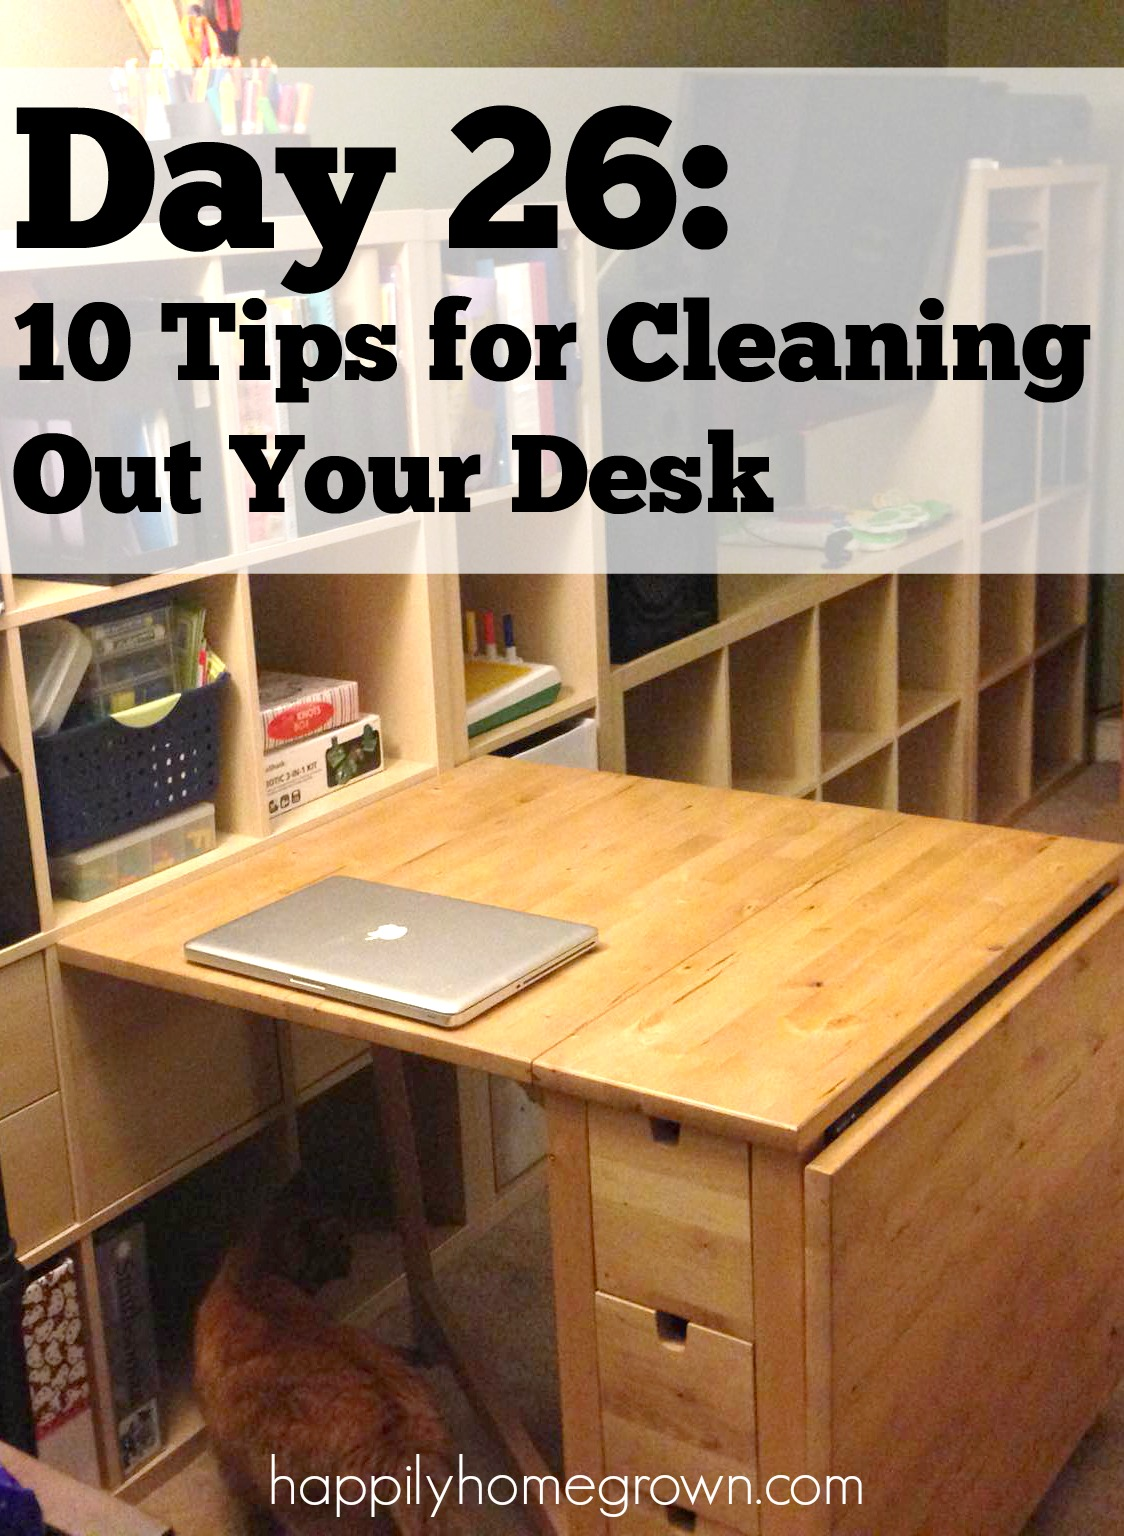 Cleaning up your desk should not be overwhelming. Here are 10 tips to help you to declutter your desk and get more organized.